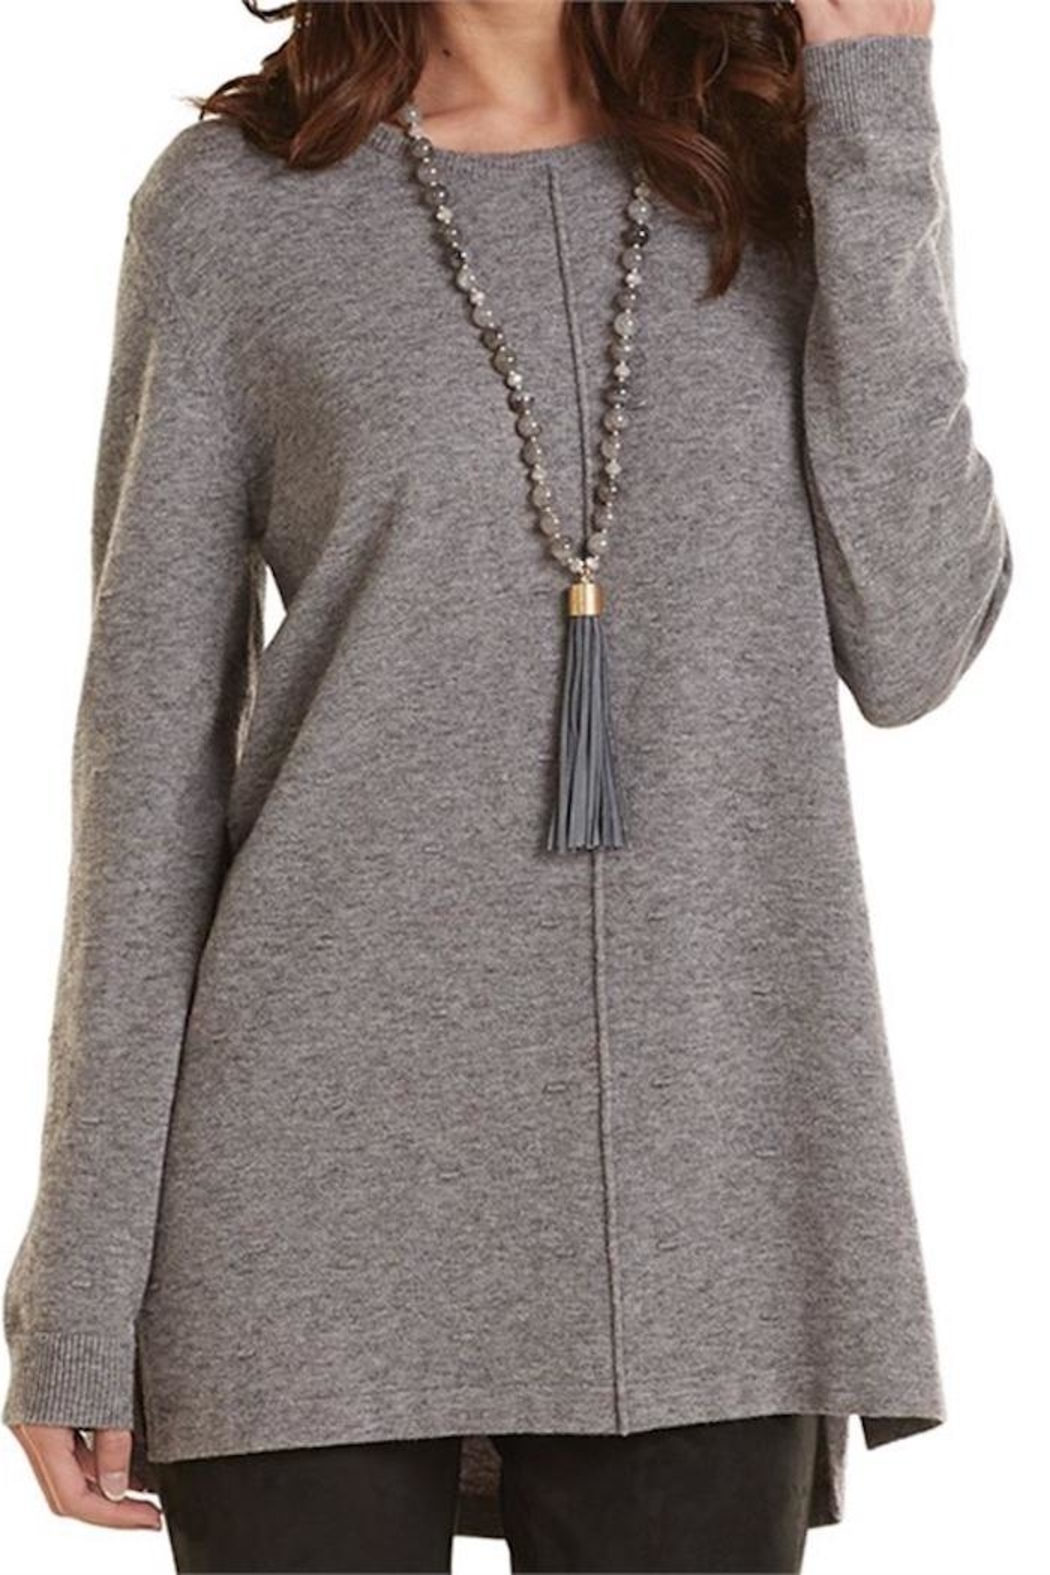 Mud Pie Camilla Sweater Tunic - Side Cropped Image